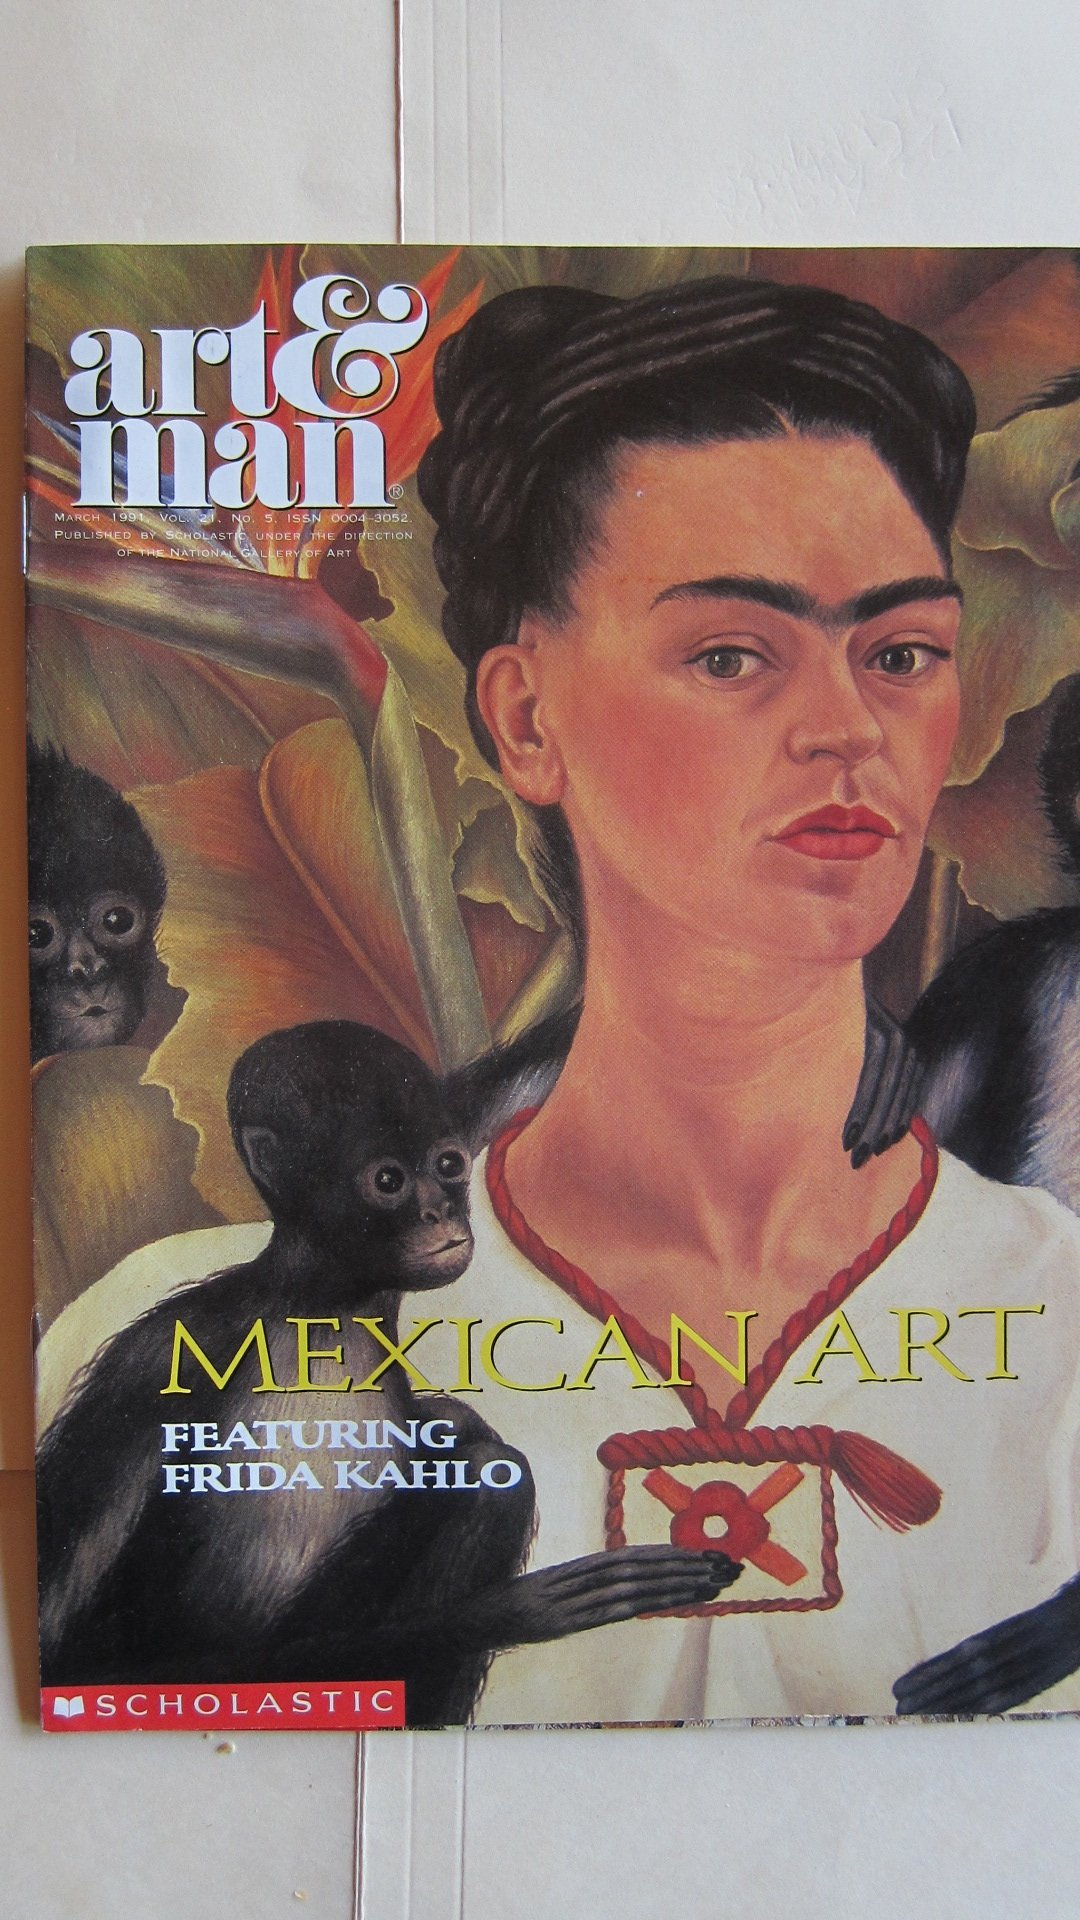 scholastic art magazine mexican art featuring frida kahlo march 1991 scholastic art magazine